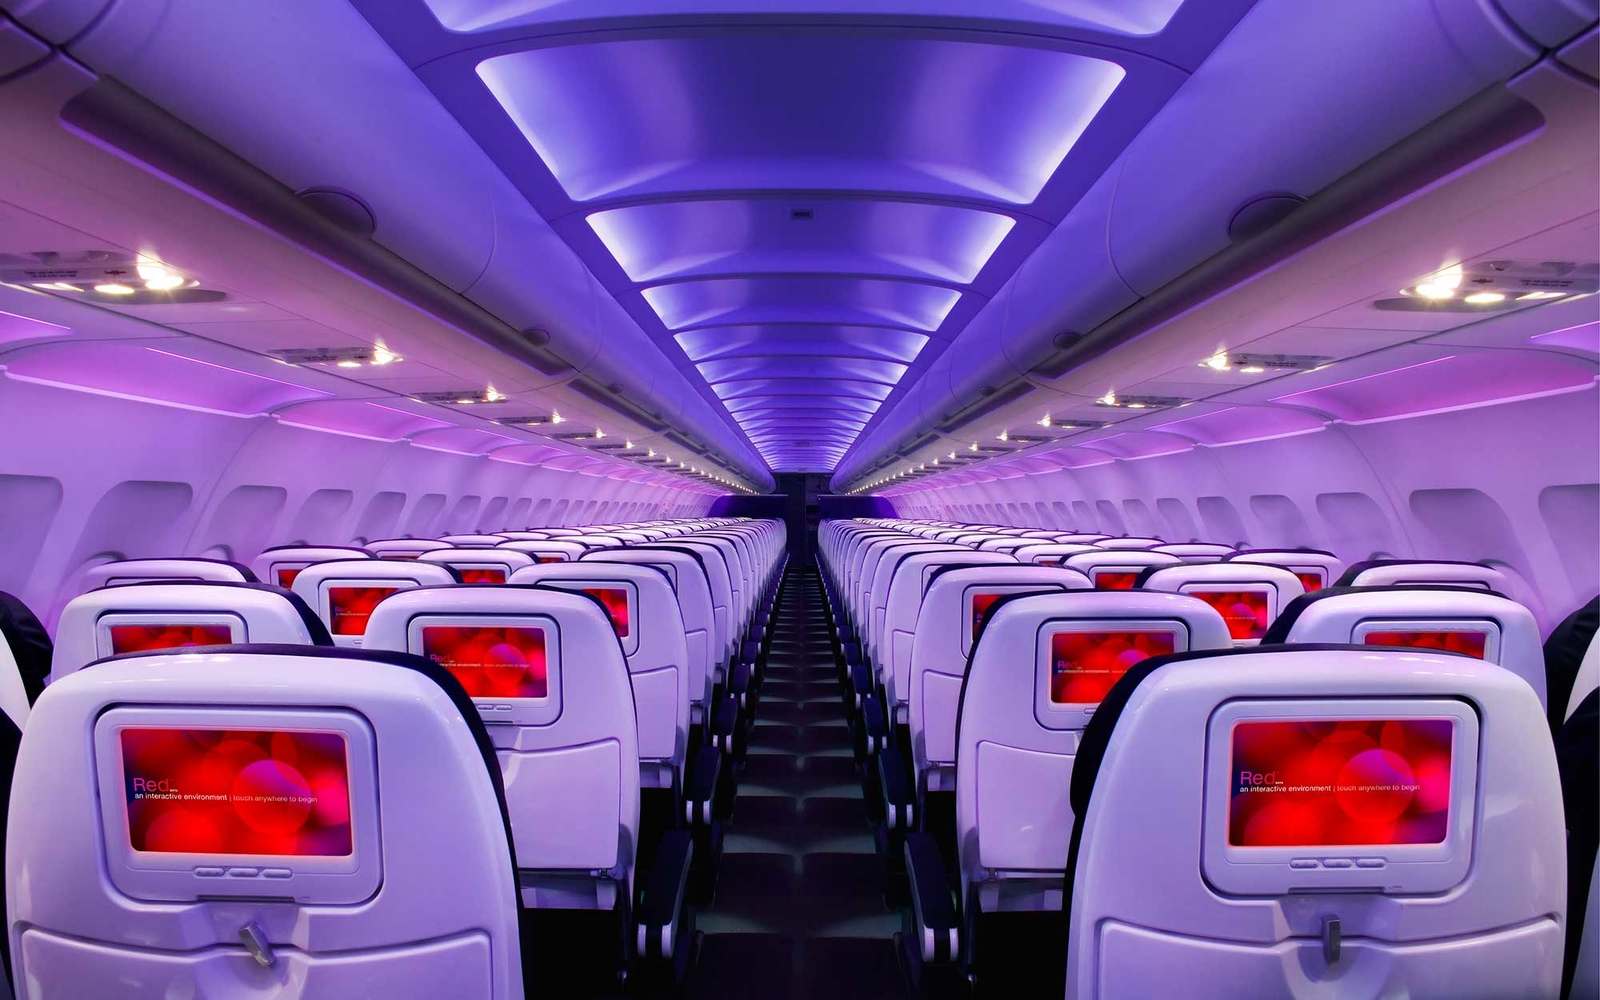 Virgin America plane interior